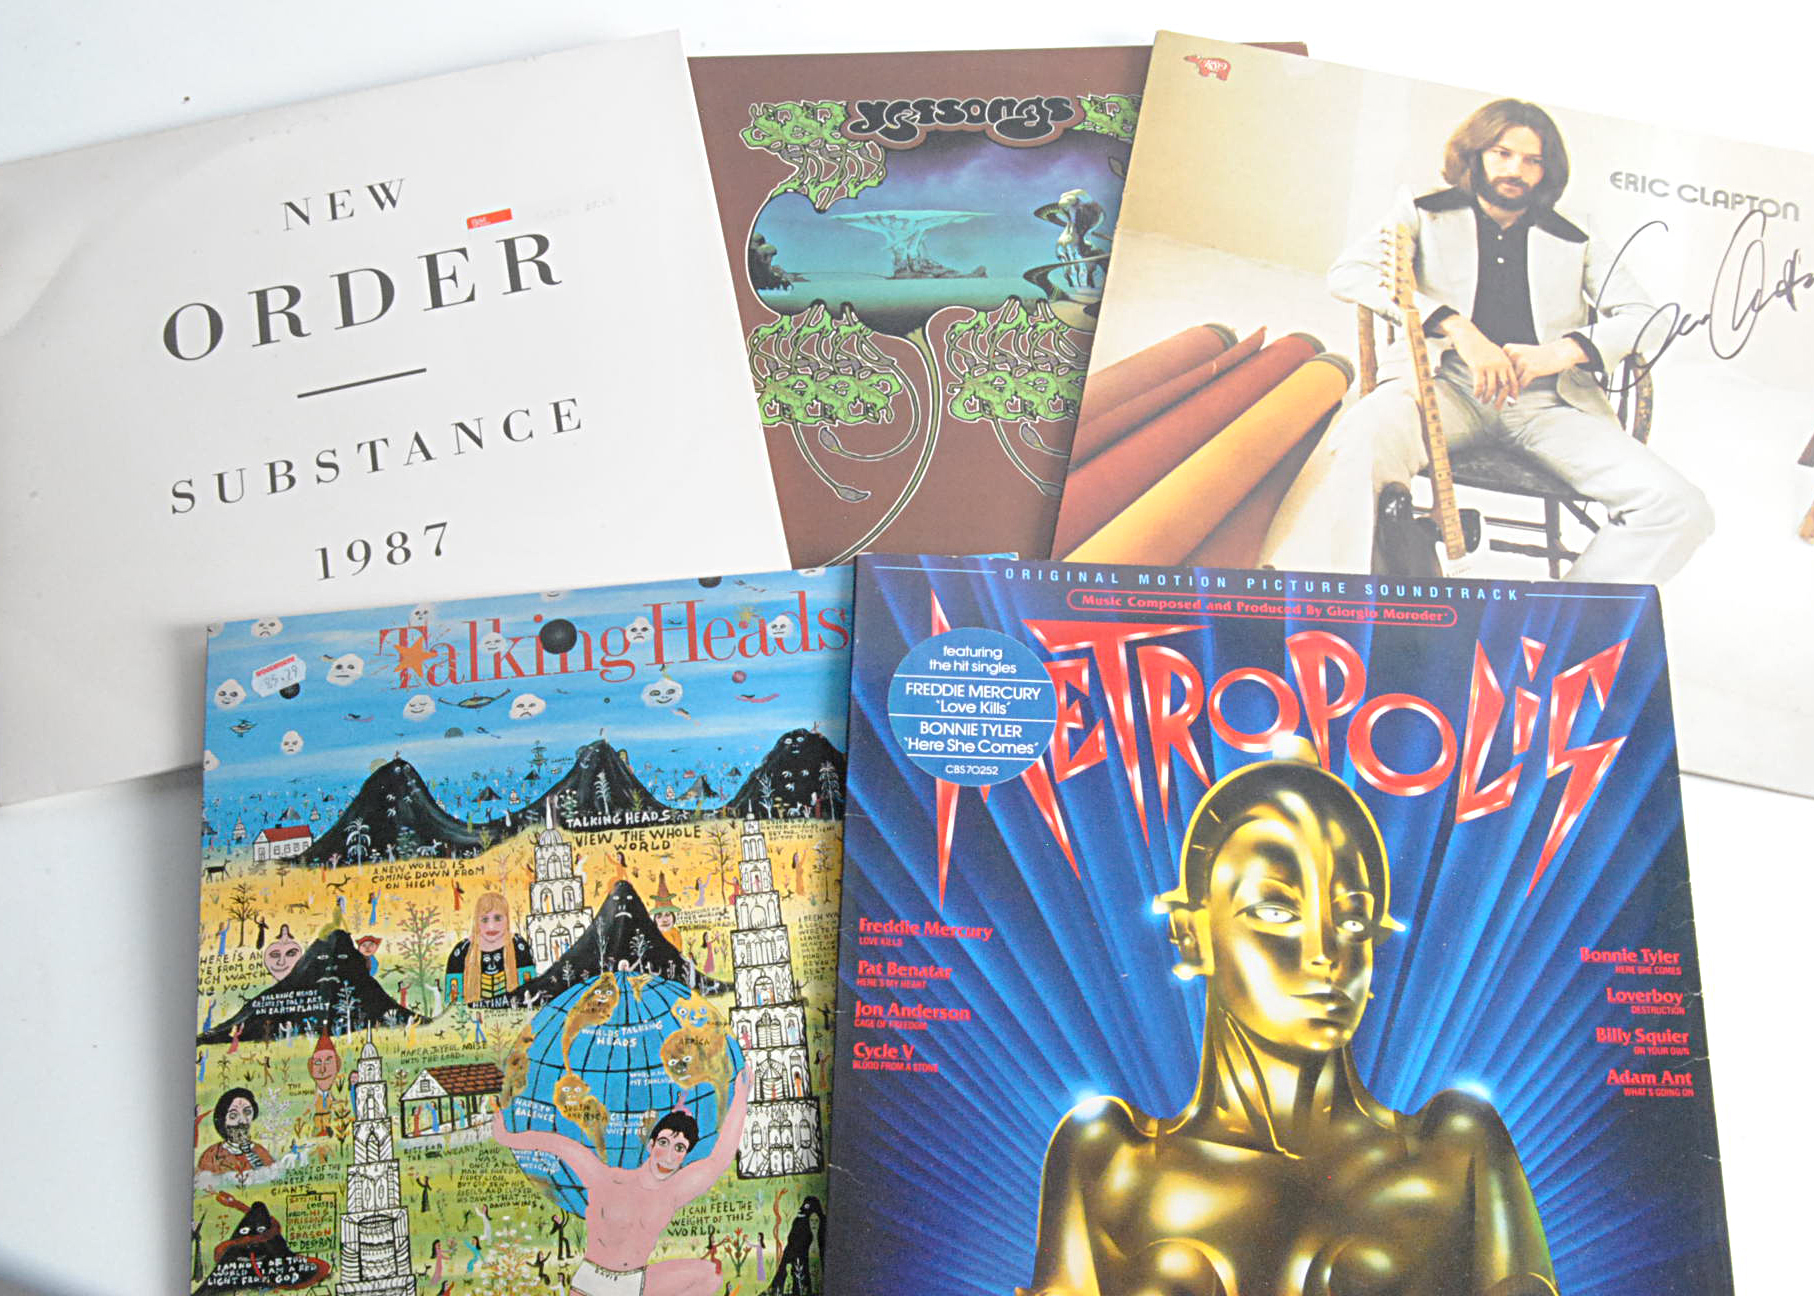 LP Records, approximately one hundred and sixty albums of mainly Rock and Pop with artists including